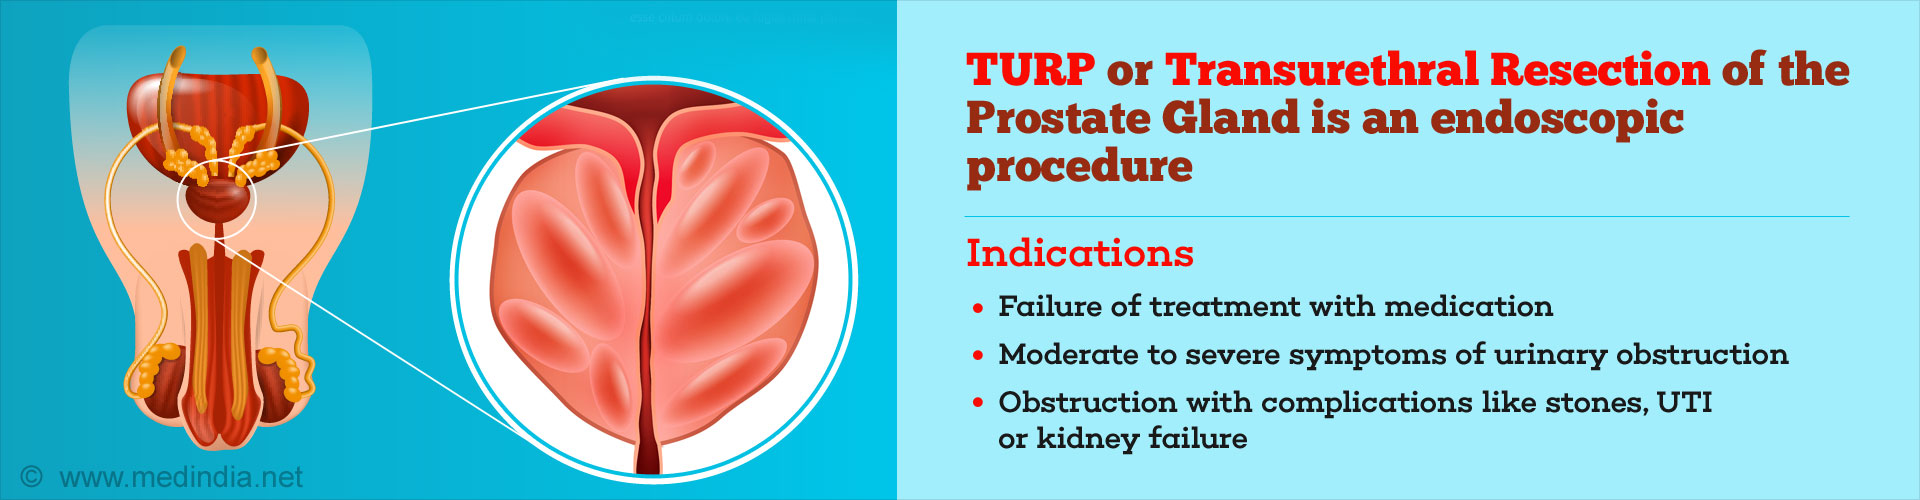 Trans-Urethral Resection of the Prostate (TURP)